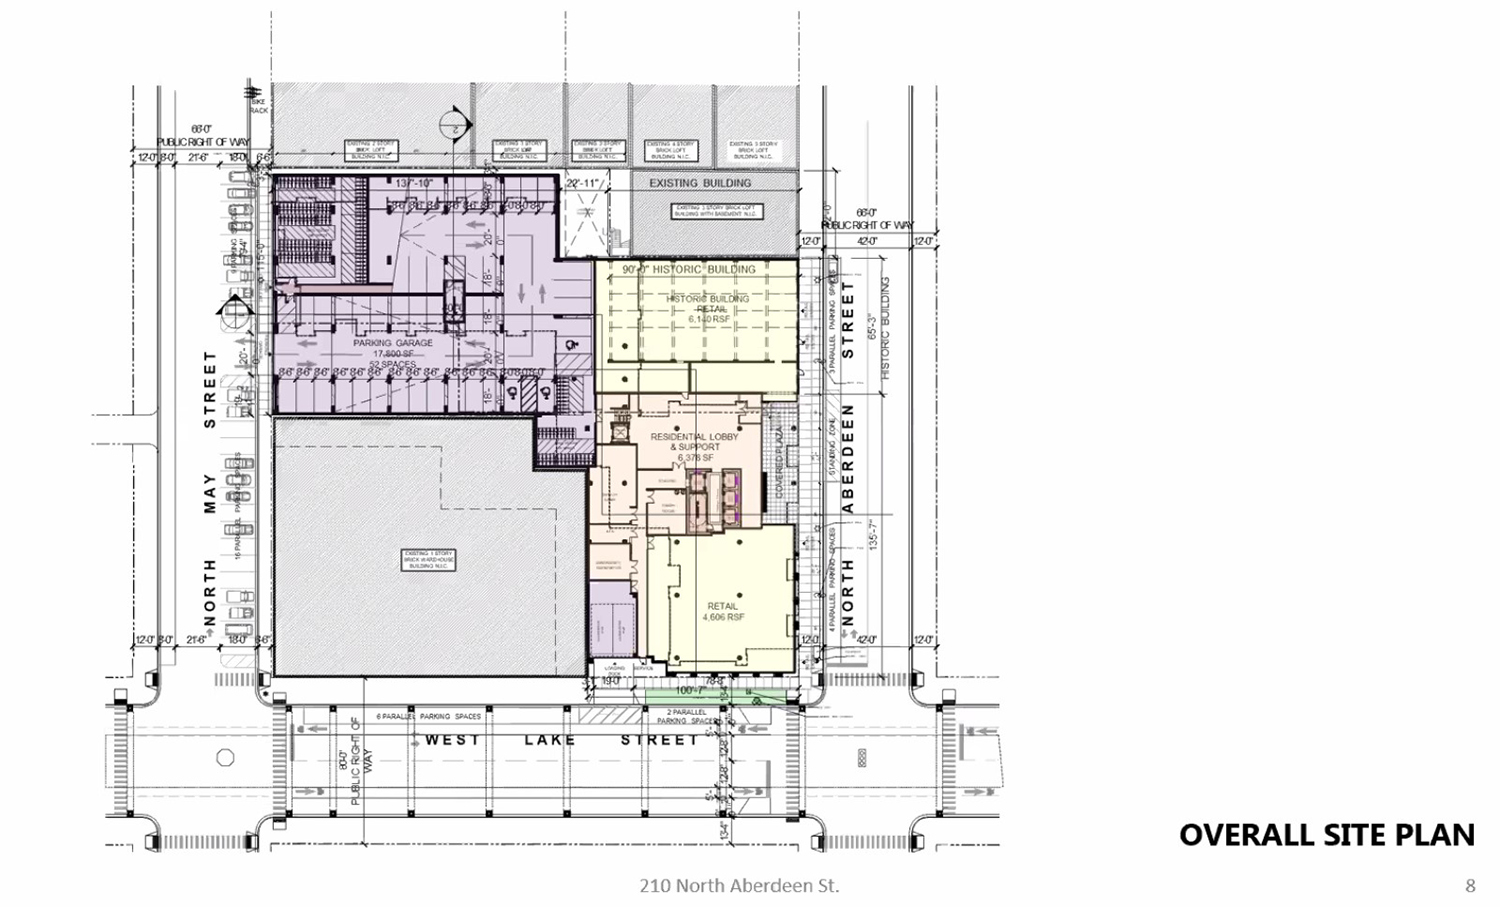 Site Plan for 210 N Aberdeen Street. Drawing by NORR